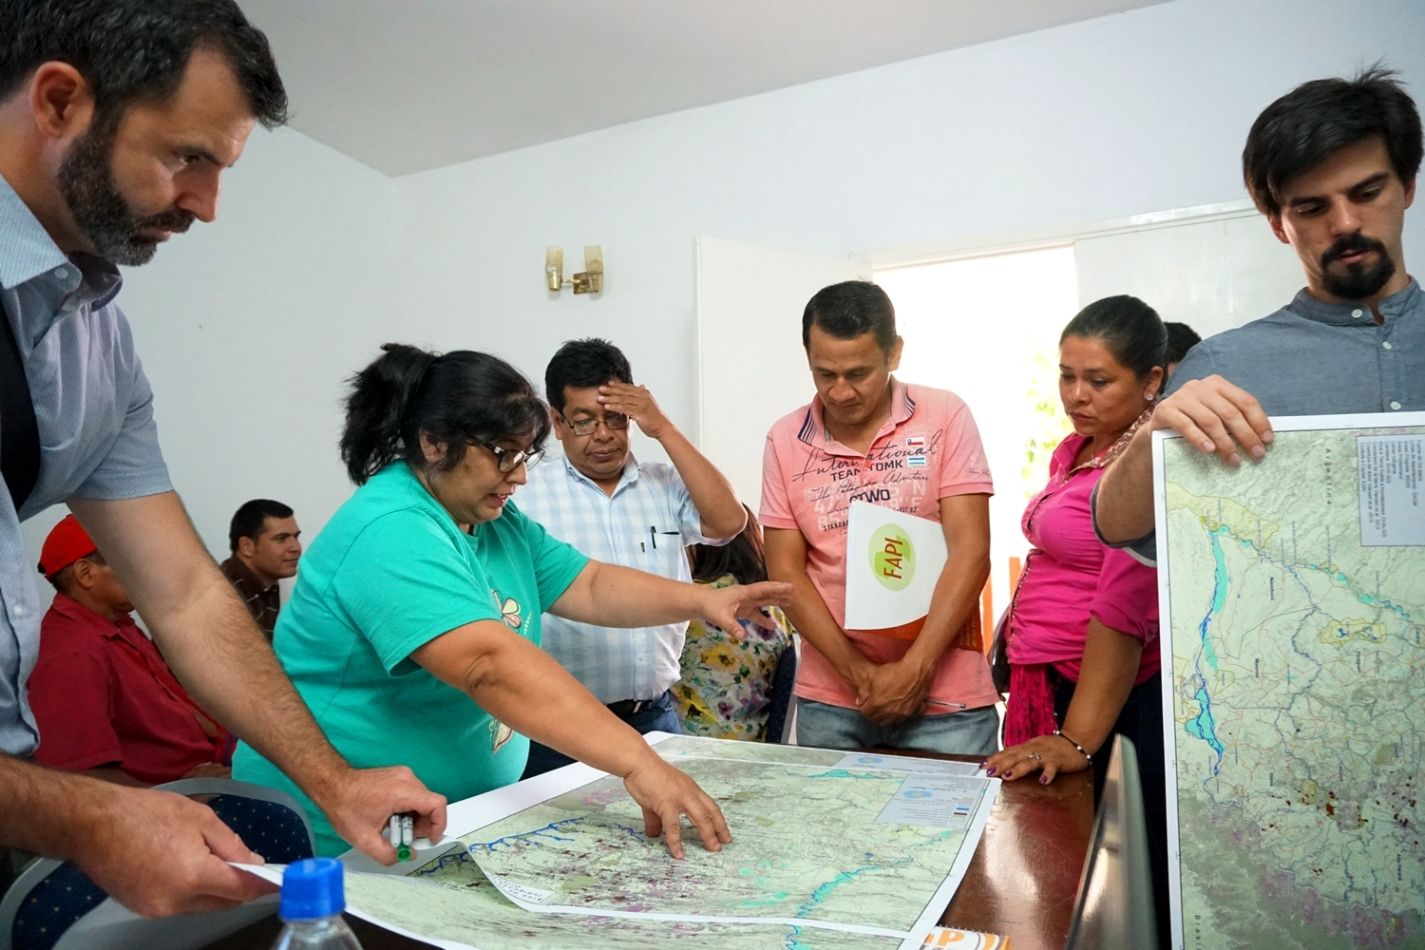 Mirta Pereira, legal advisor of FAPI; Alberto Vázquez; Sindulfo Miranda, president of the Che Iro Ara Poty association, of the Mbya Guaraní people; and Amada Martínez discussing maps during the planning workshop.